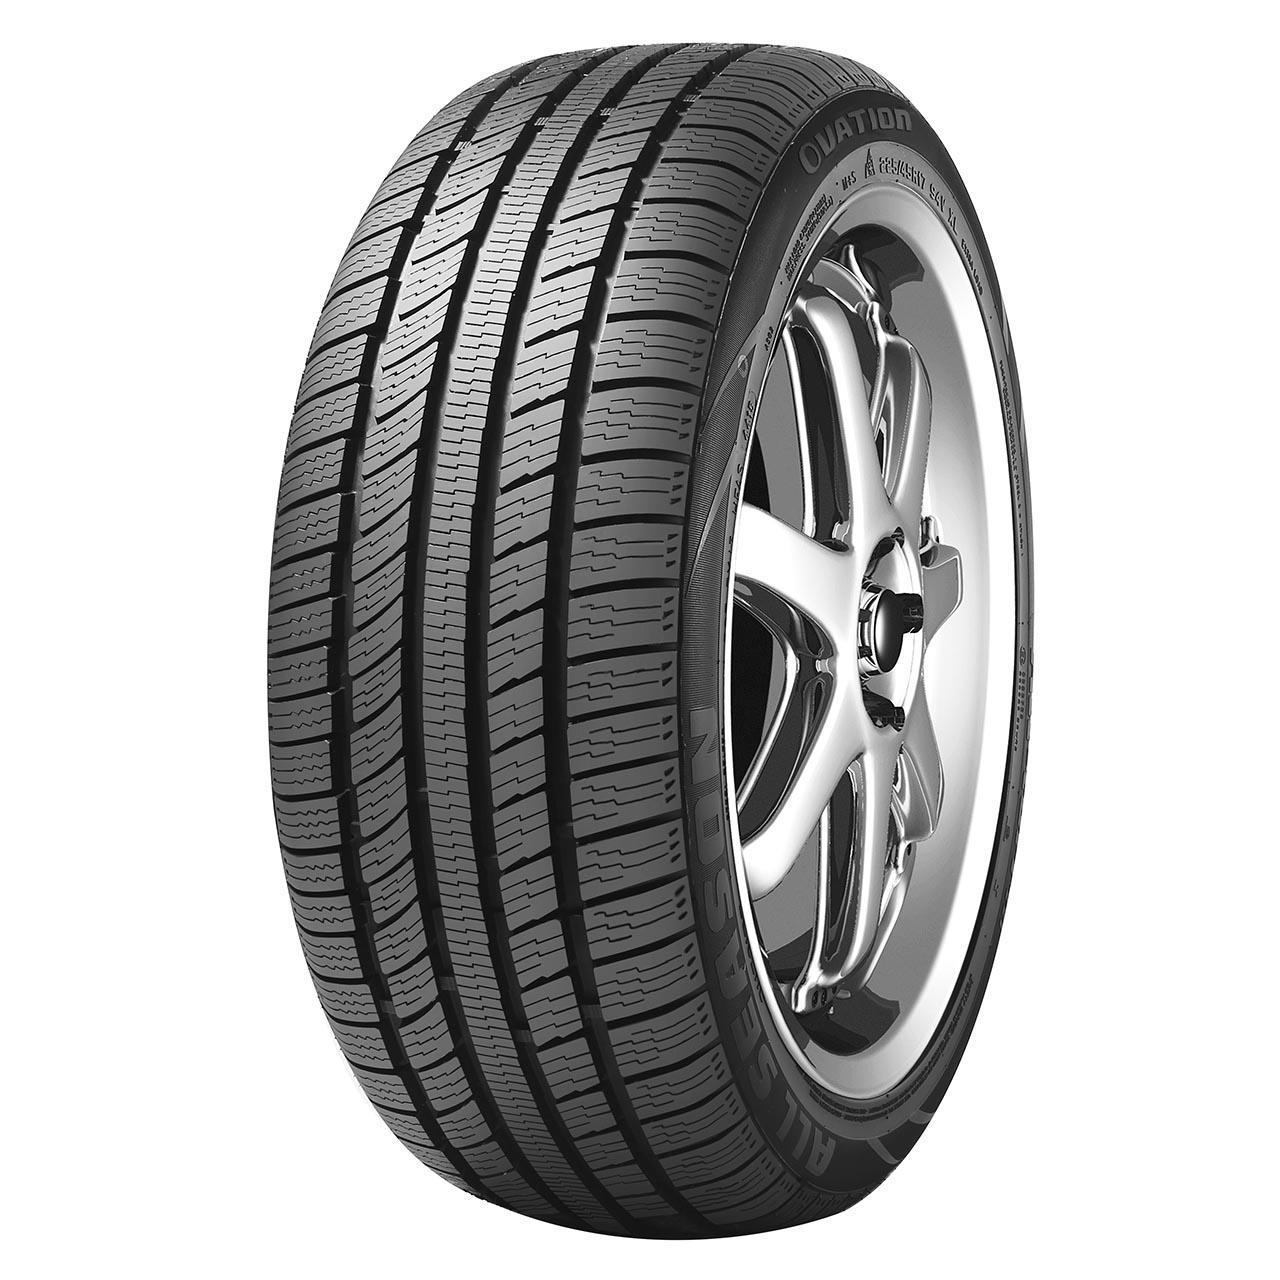 OVATION VI-782AS 175/70 R14 88T XL M+S